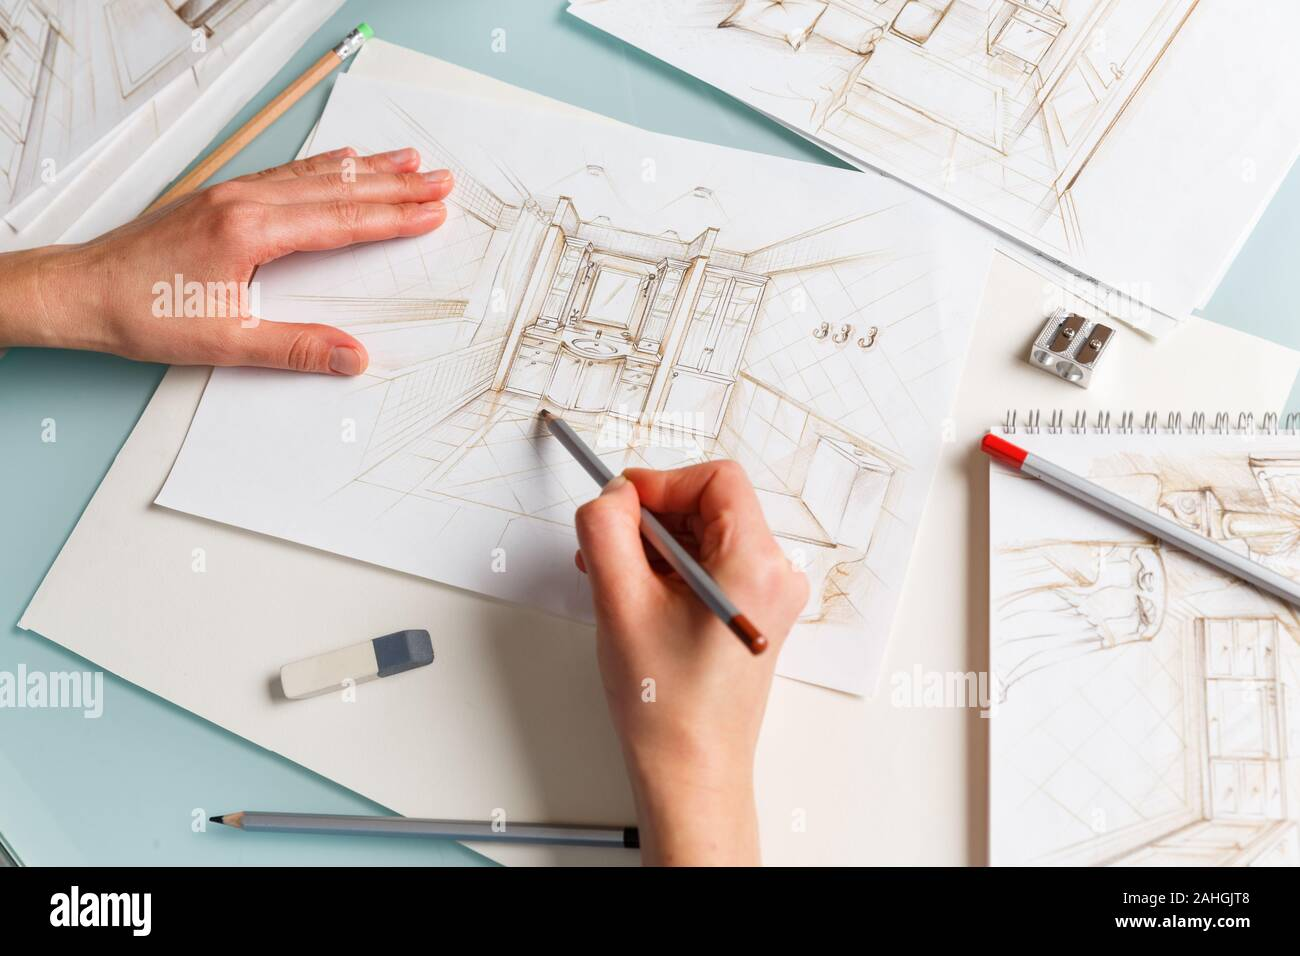 Interior Designer Making Hand Drawing Pencil Sketch Of A Bathroom Interior Design Projects Concept Stock Photo Alamy